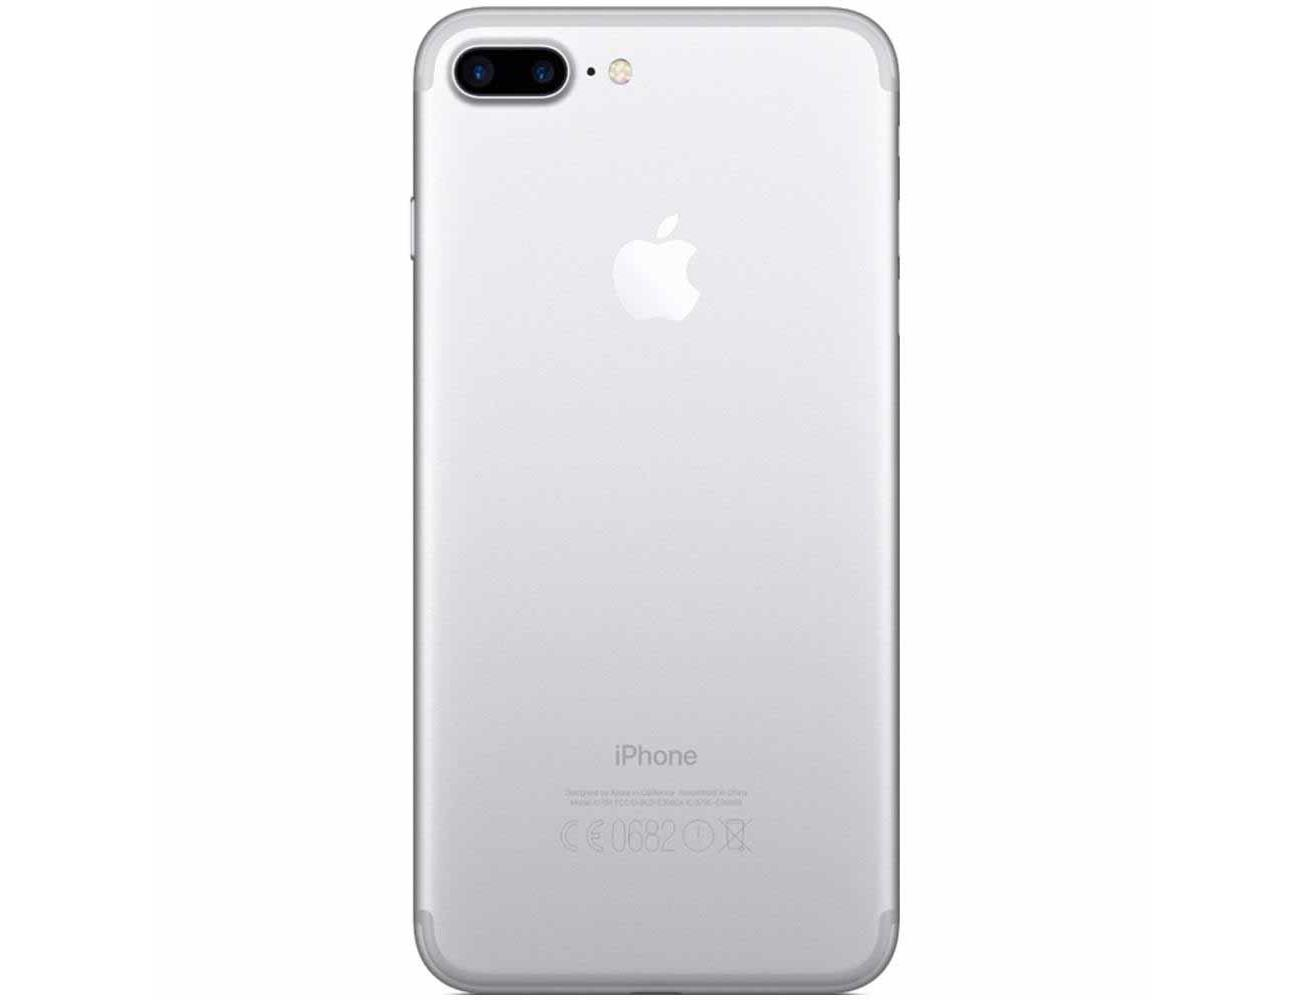 apple iphone 7 plus 128 gb silver blink kuwait